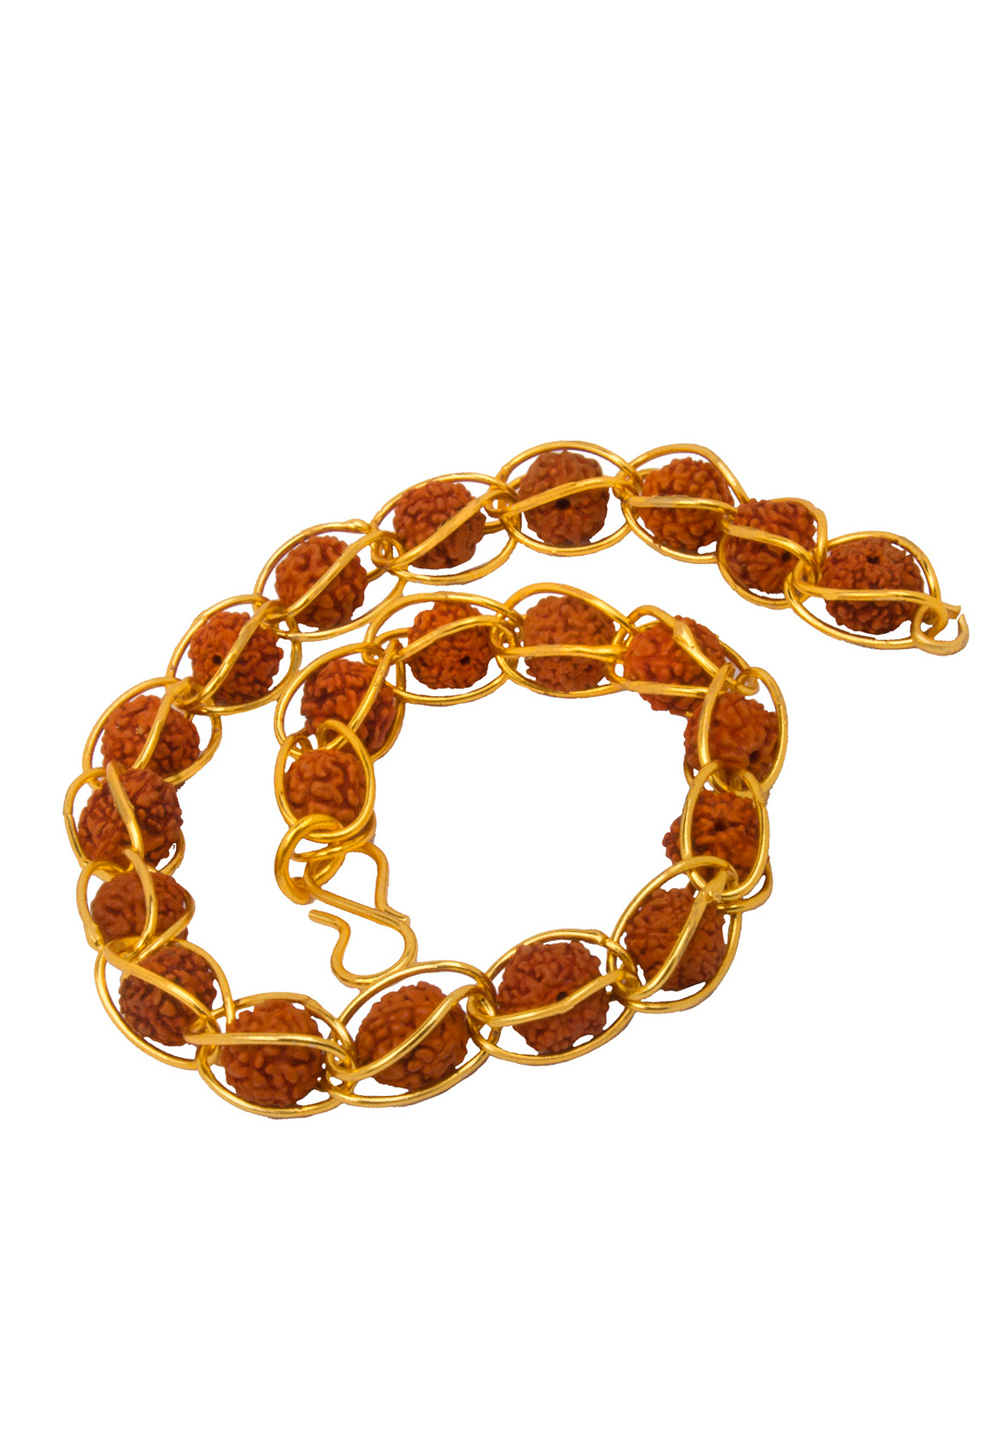 Golden Alloy Men Gold Plated Bracelet 175591